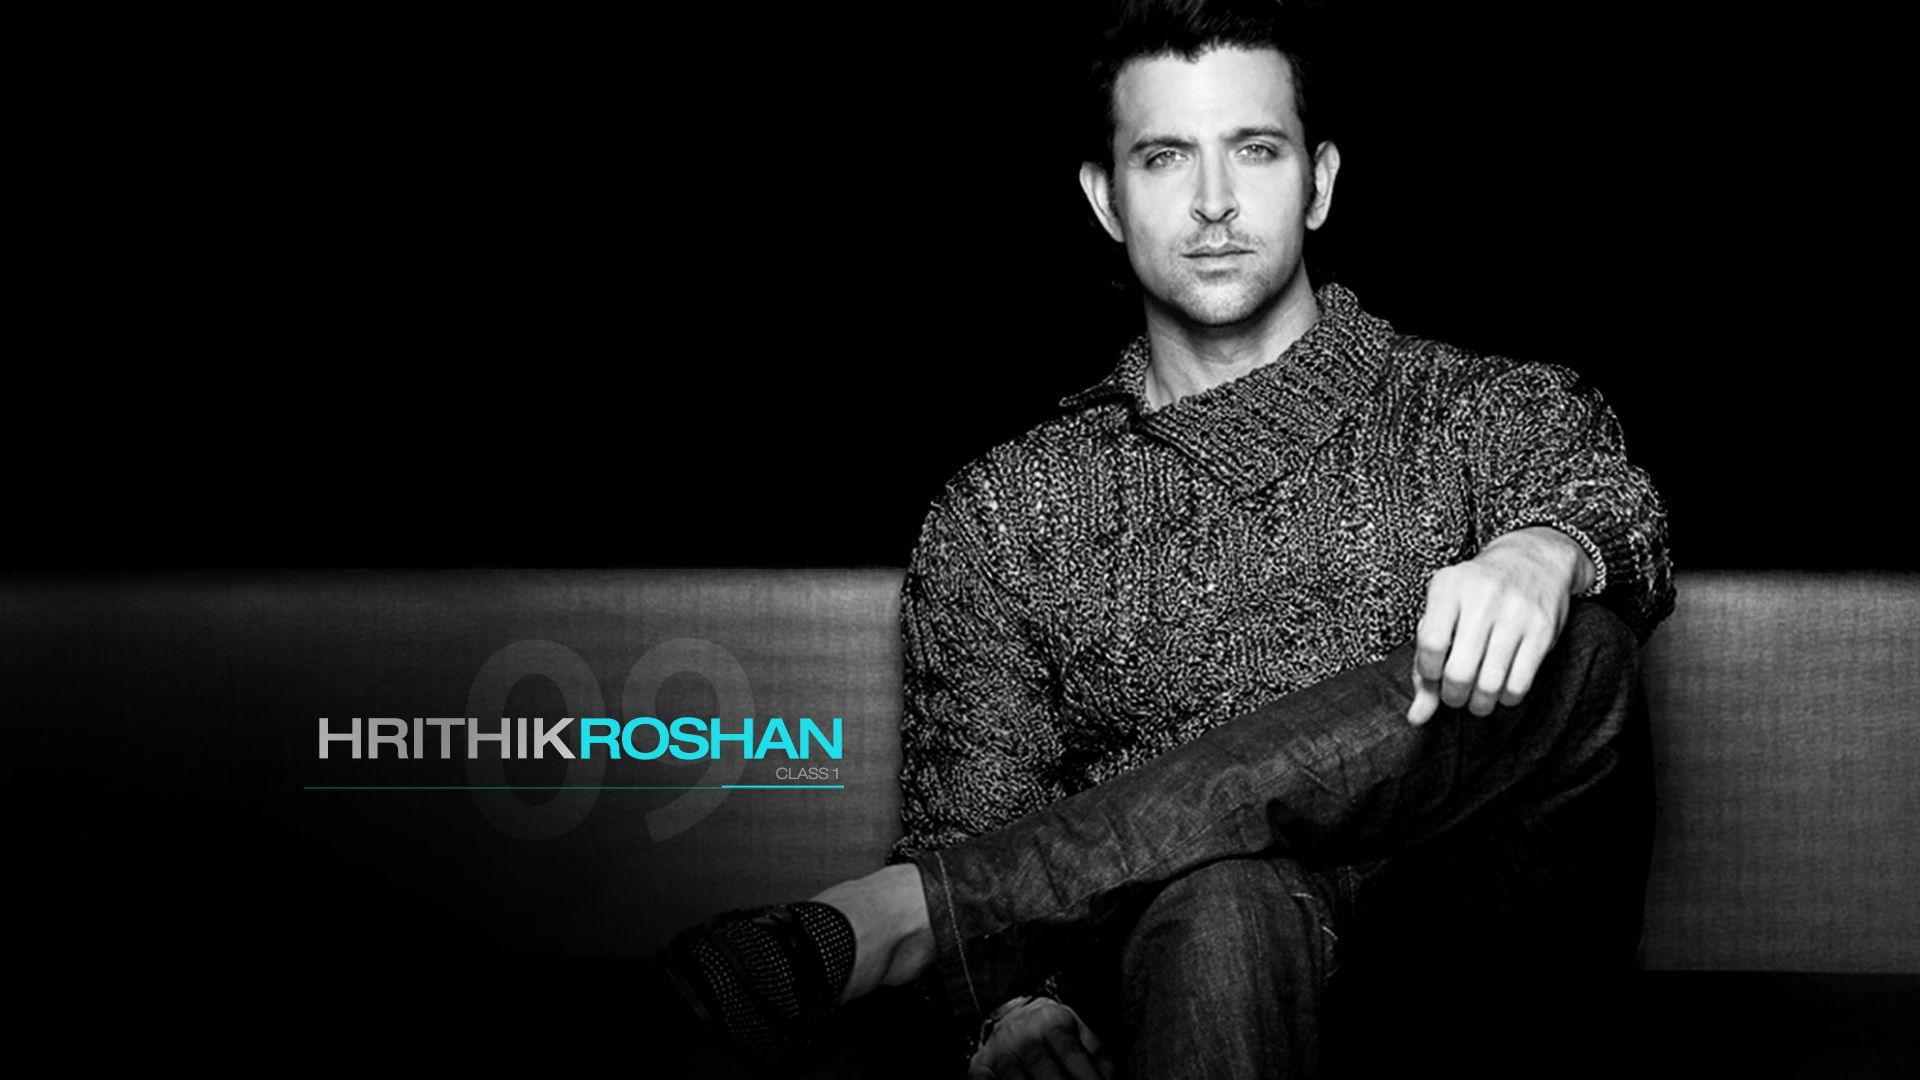 Bollywood Actors Walpaper In 2080p: Hrithik Roshan Hd Wallpapers Free Download